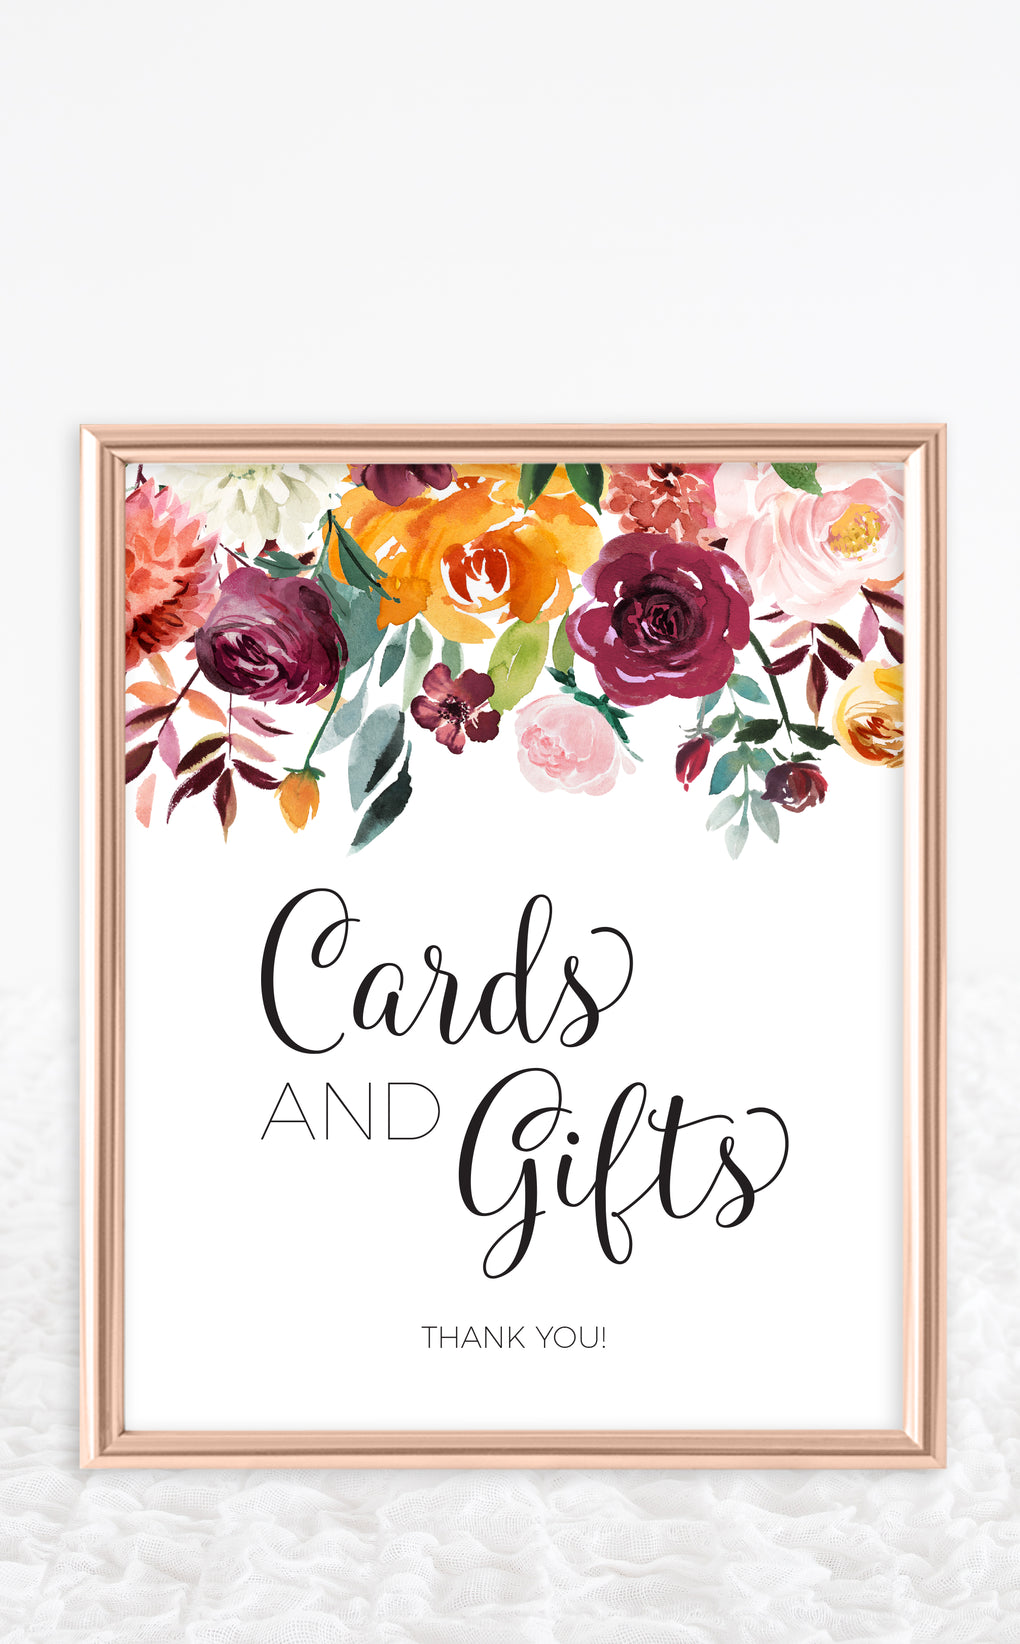 Burgundy floral cards and gifts sign on display at bridal shower